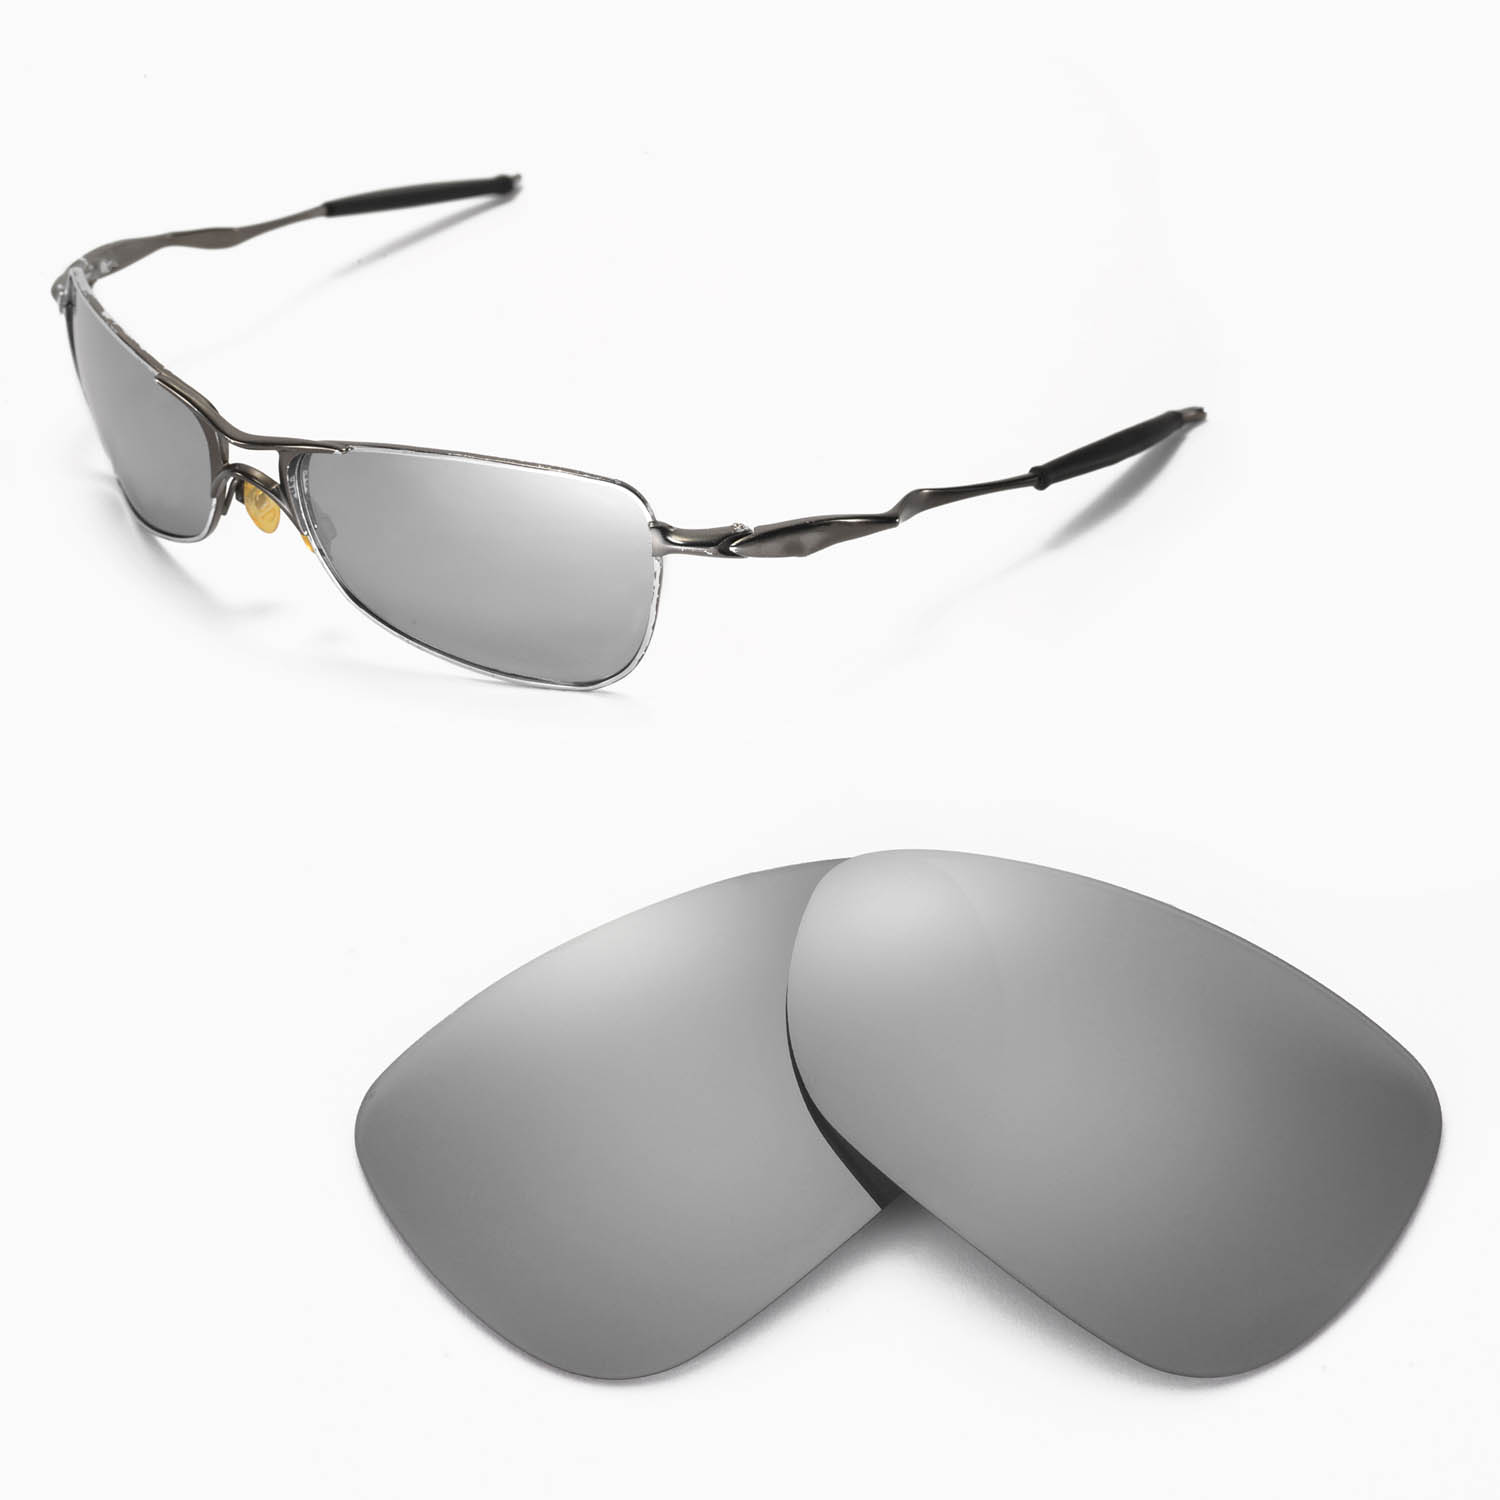 c03d882da3 Details about New WL Polarized Titanium Replacement Lenses For Oakley  Crosshair 1.0 Sunglasses